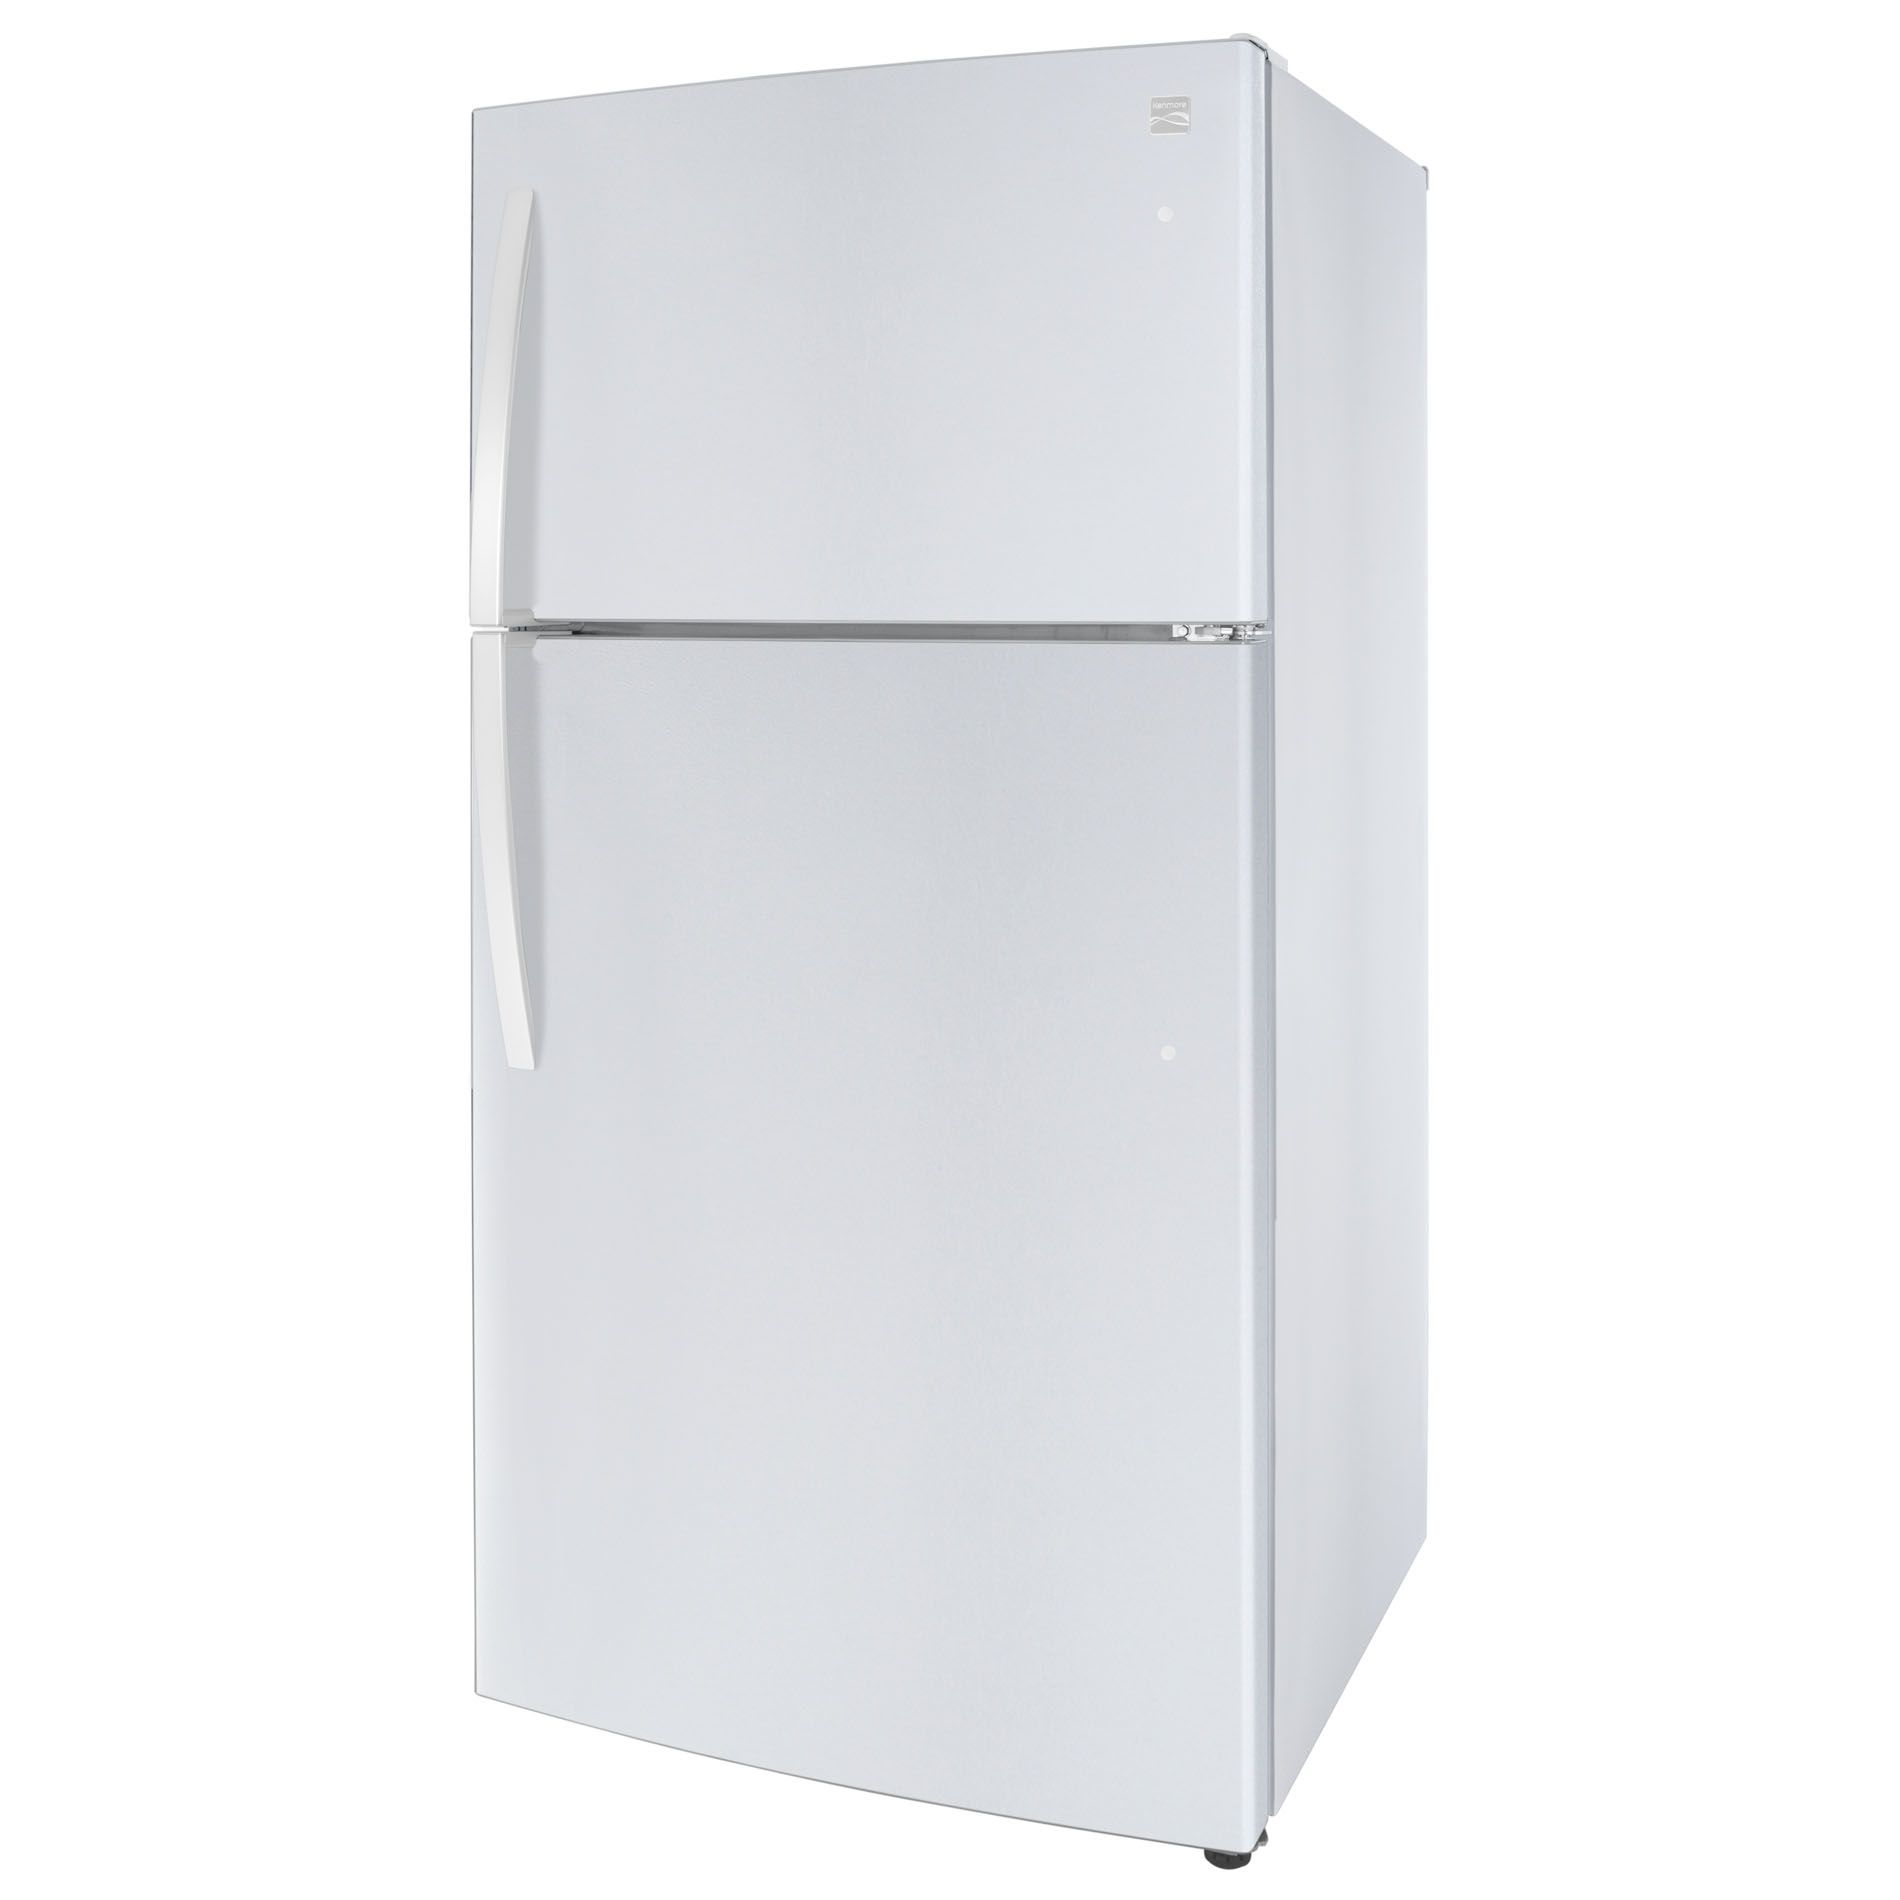 Kenmore 24 cu. ft. Top-Freezer Refrigerator - White